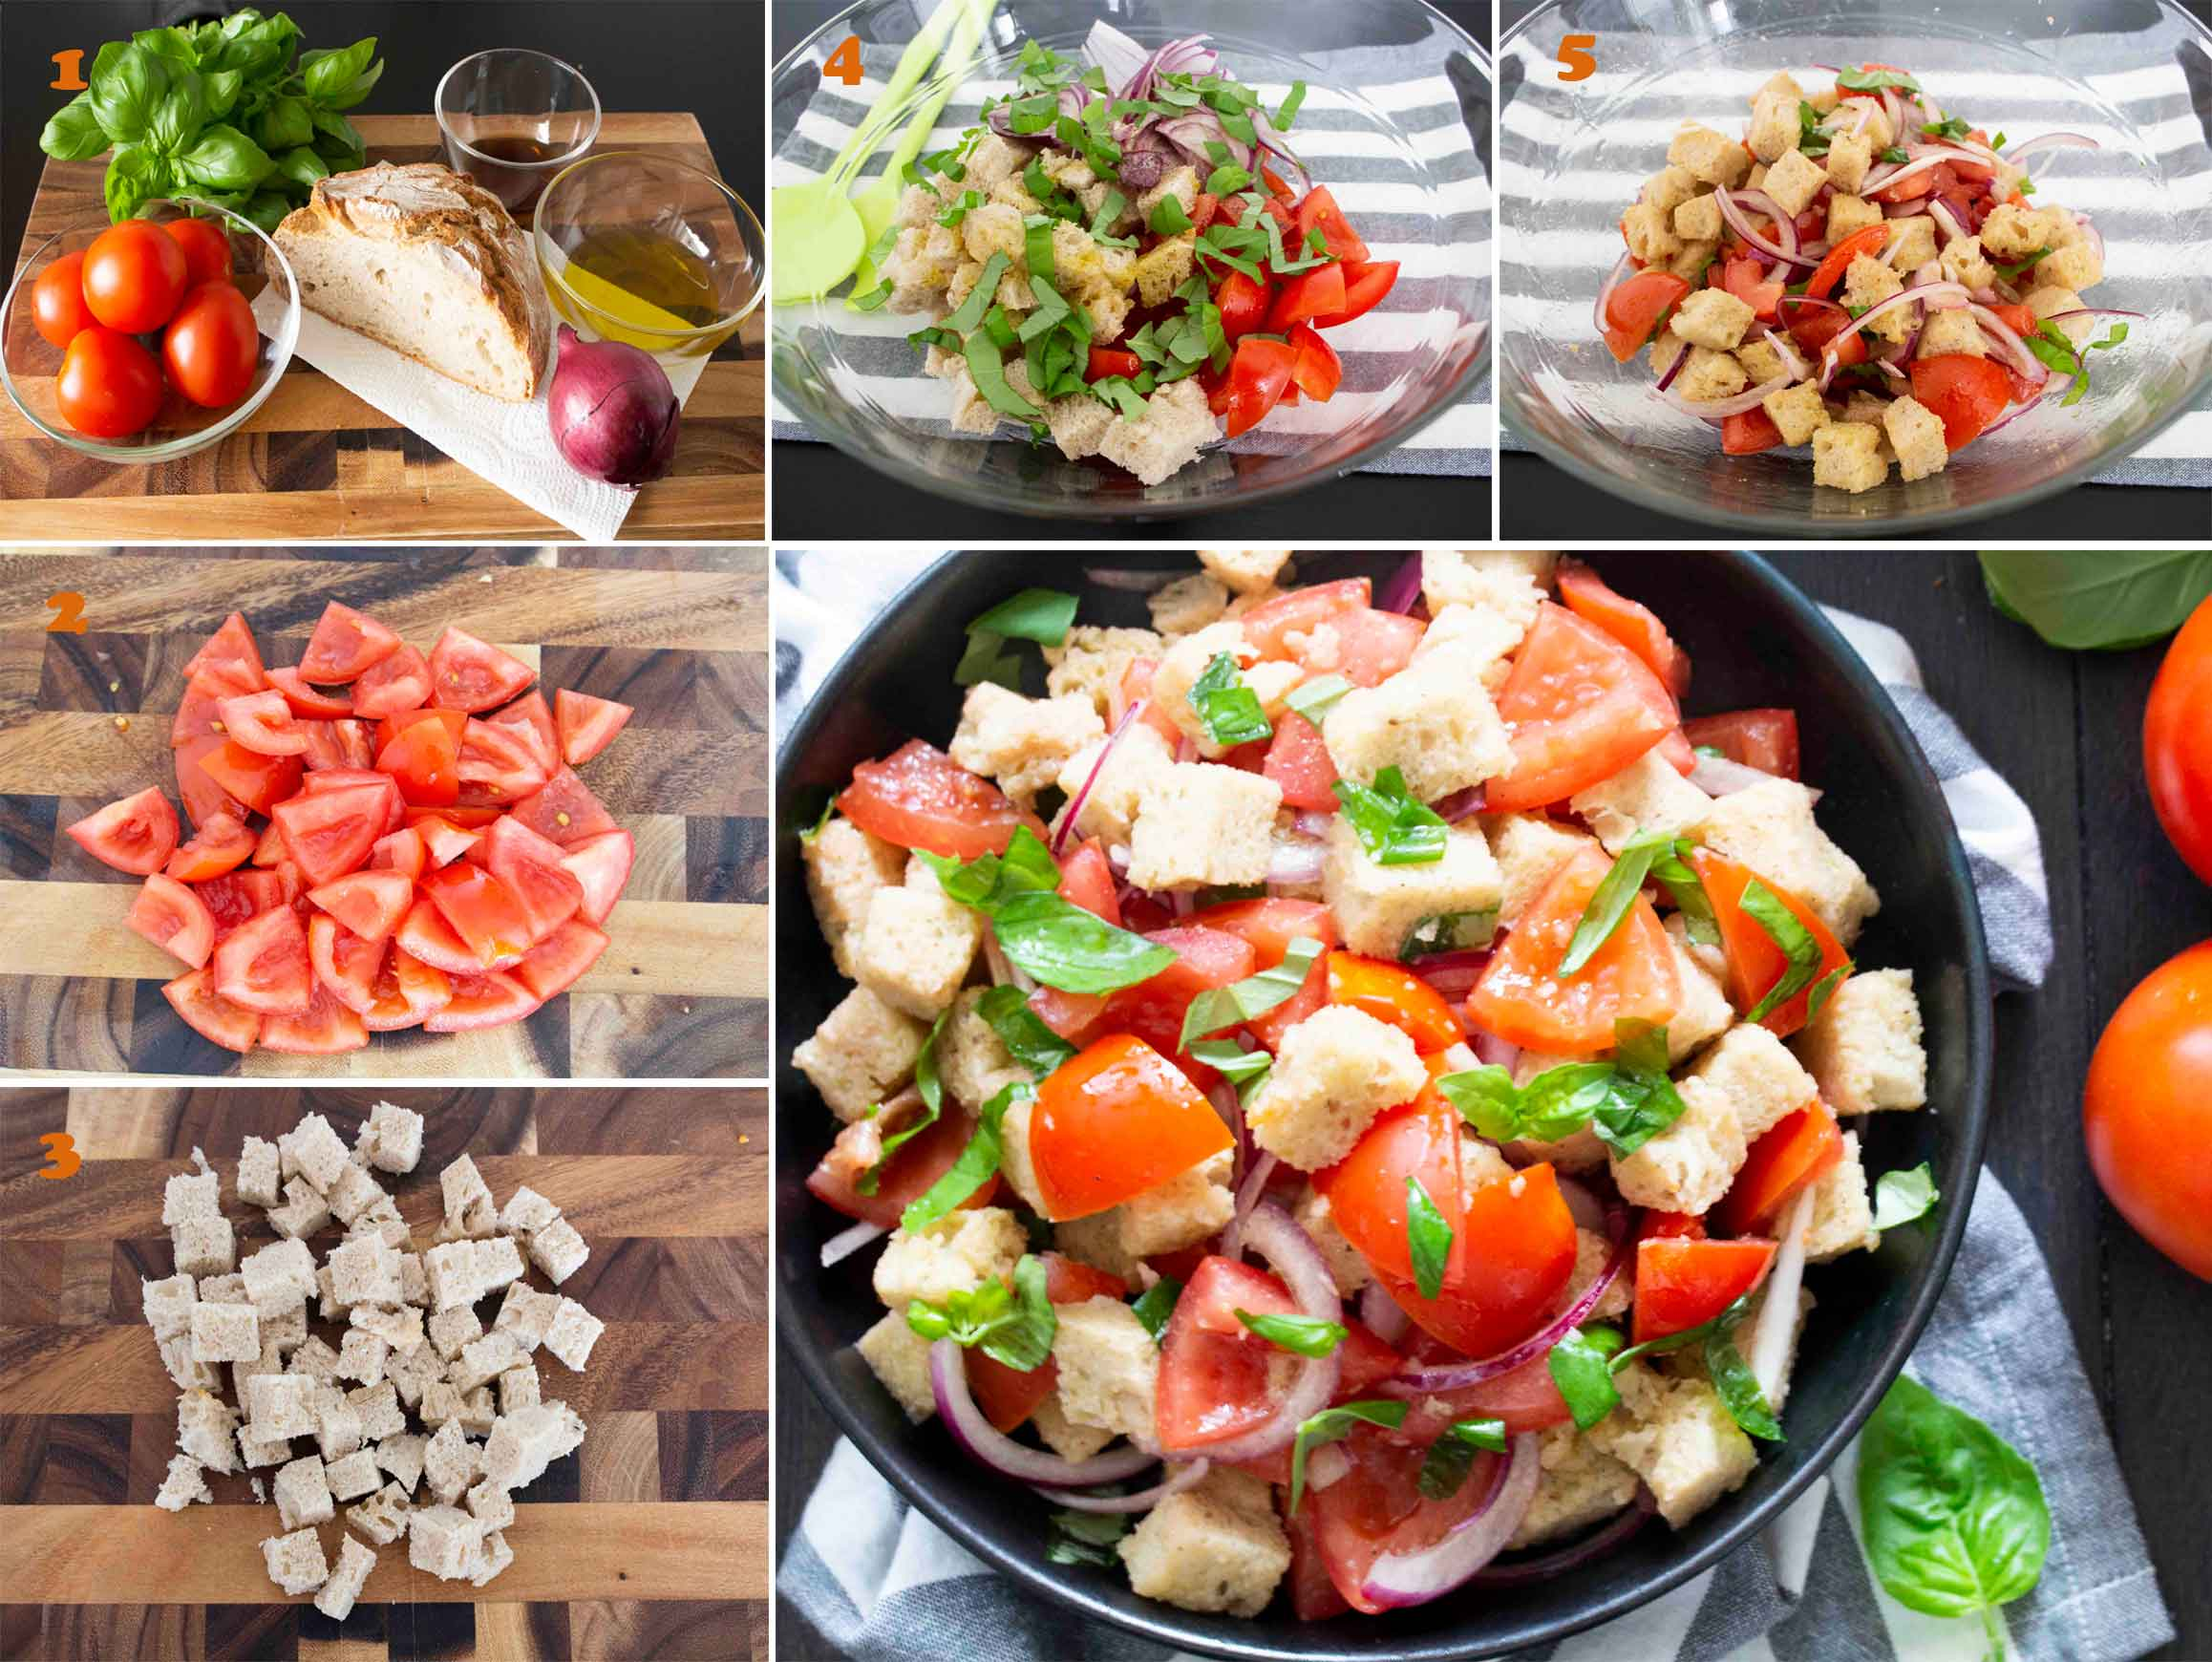 A collage of images showing the step by step process of making Panzanella (Bread and Tomato Salad)